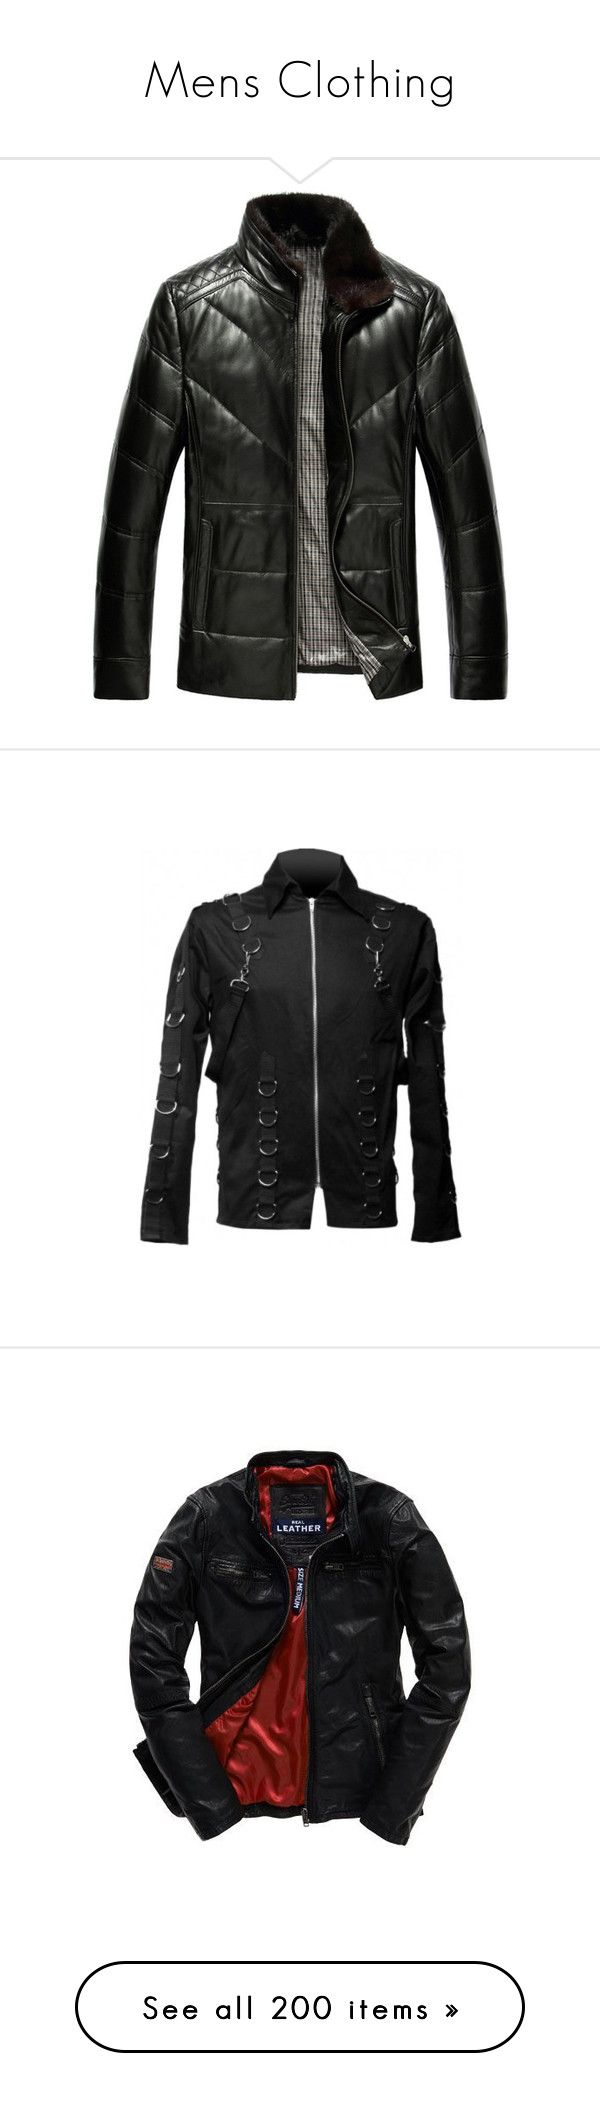 """""""Mens Clothing"""" by tabithahallows ❤ liked on Polyvore featuring men's fashion, men's clothing, men's outerwear, men's jackets, mens outerwear, mens down filled jackets, mens leather jacket, mens padded jacket, mens jackets and tops"""